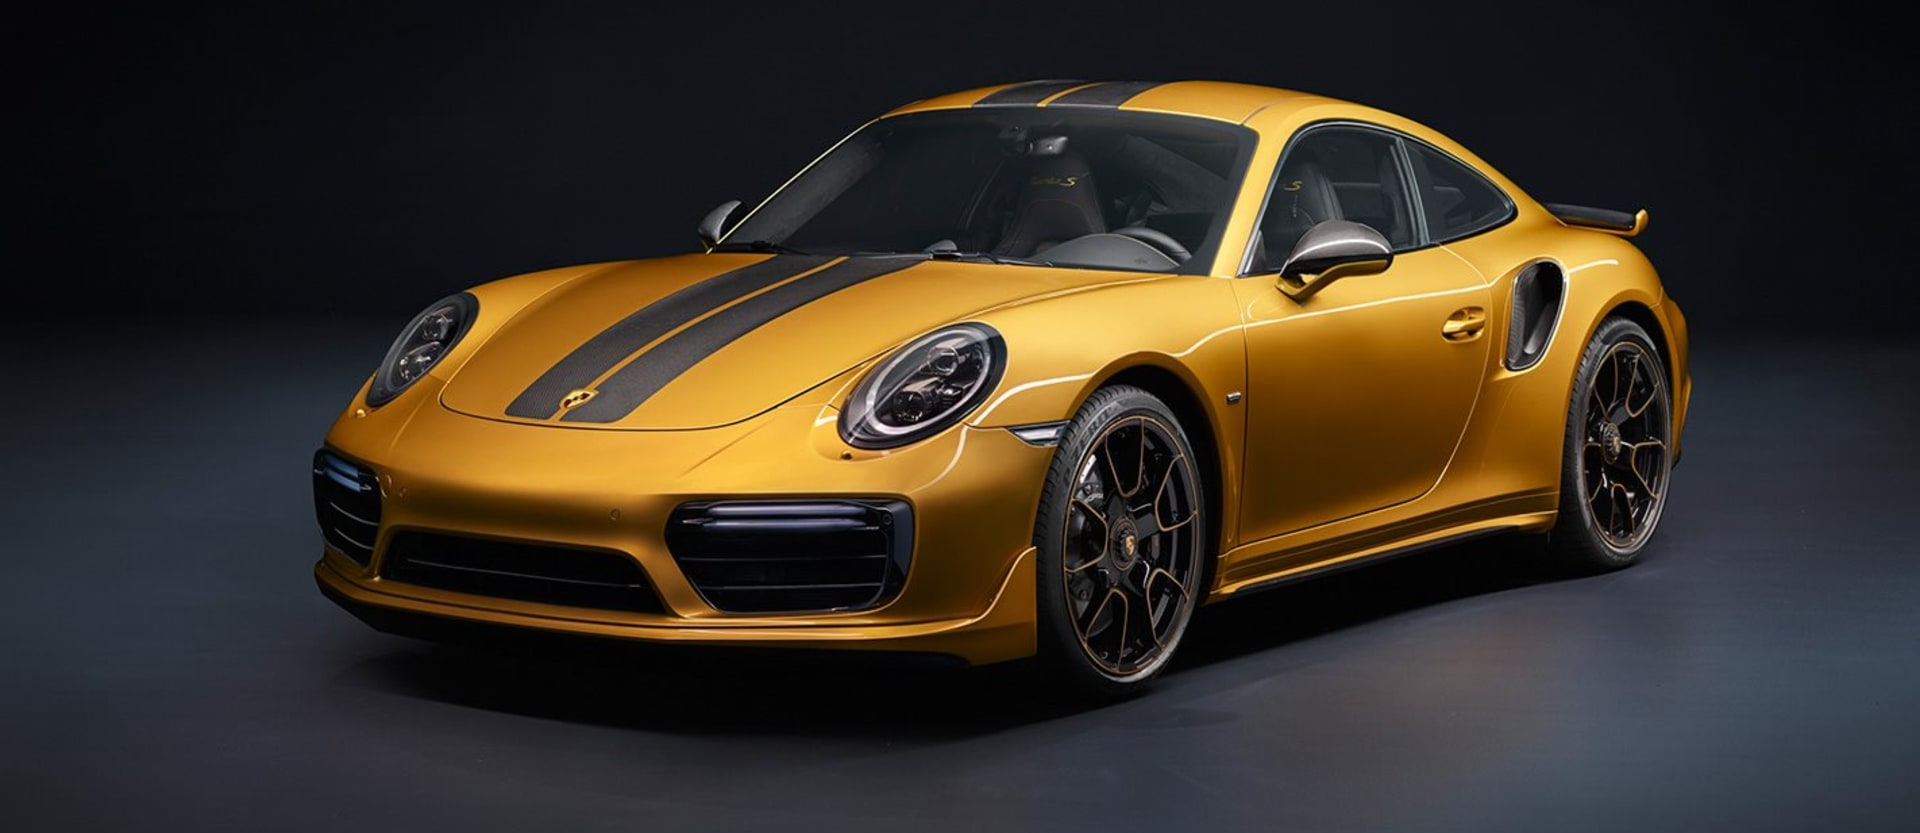 Porsche 911 Turbo S Exclusive Series arrives with ultra-exclusive $590k price tag